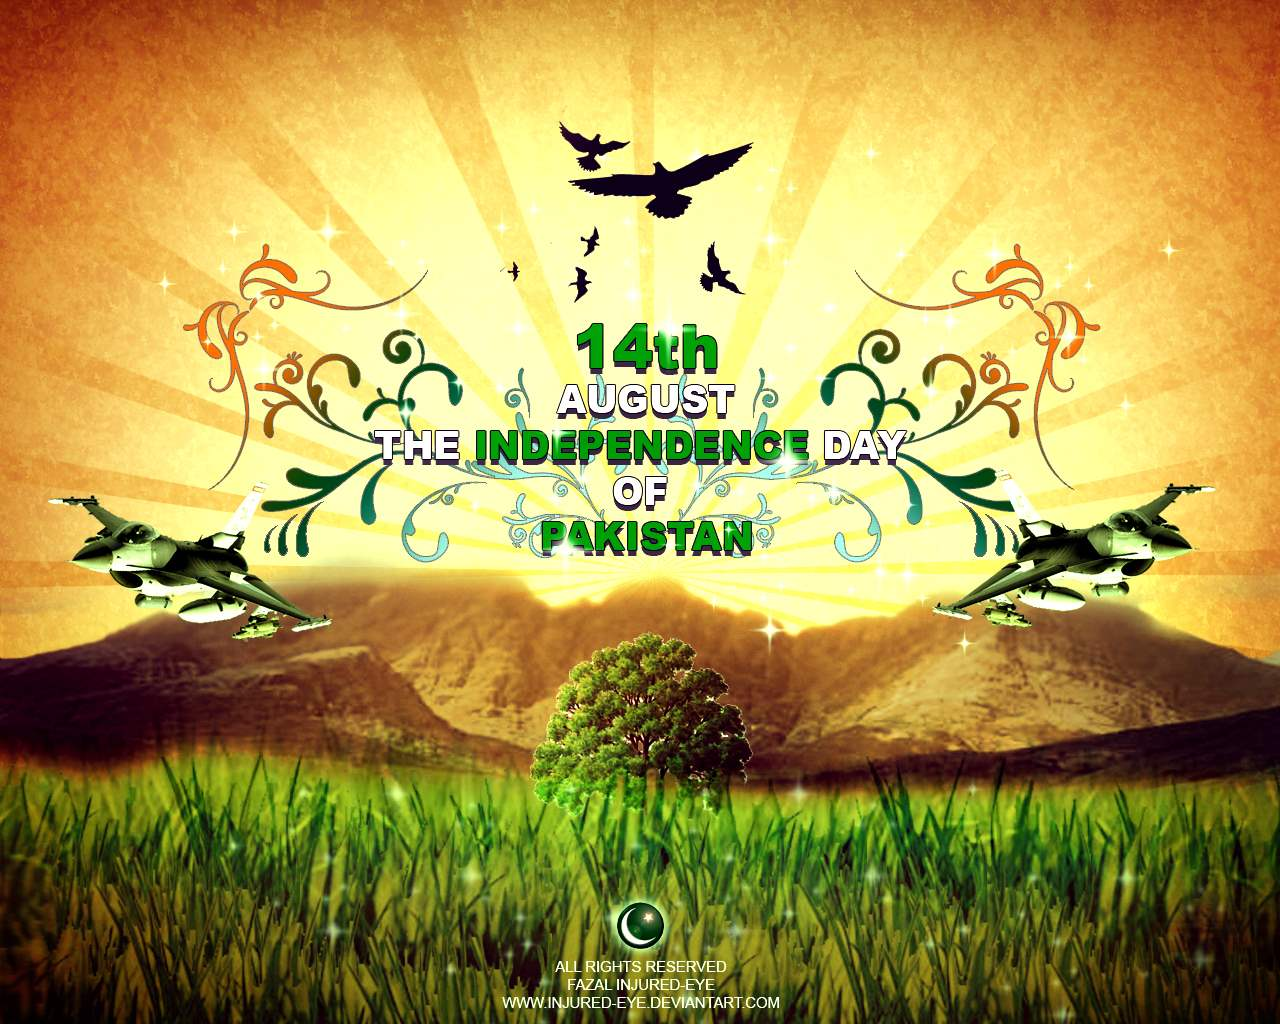 India Independence Day 2015 wallpapers  2015 31 1280x1024